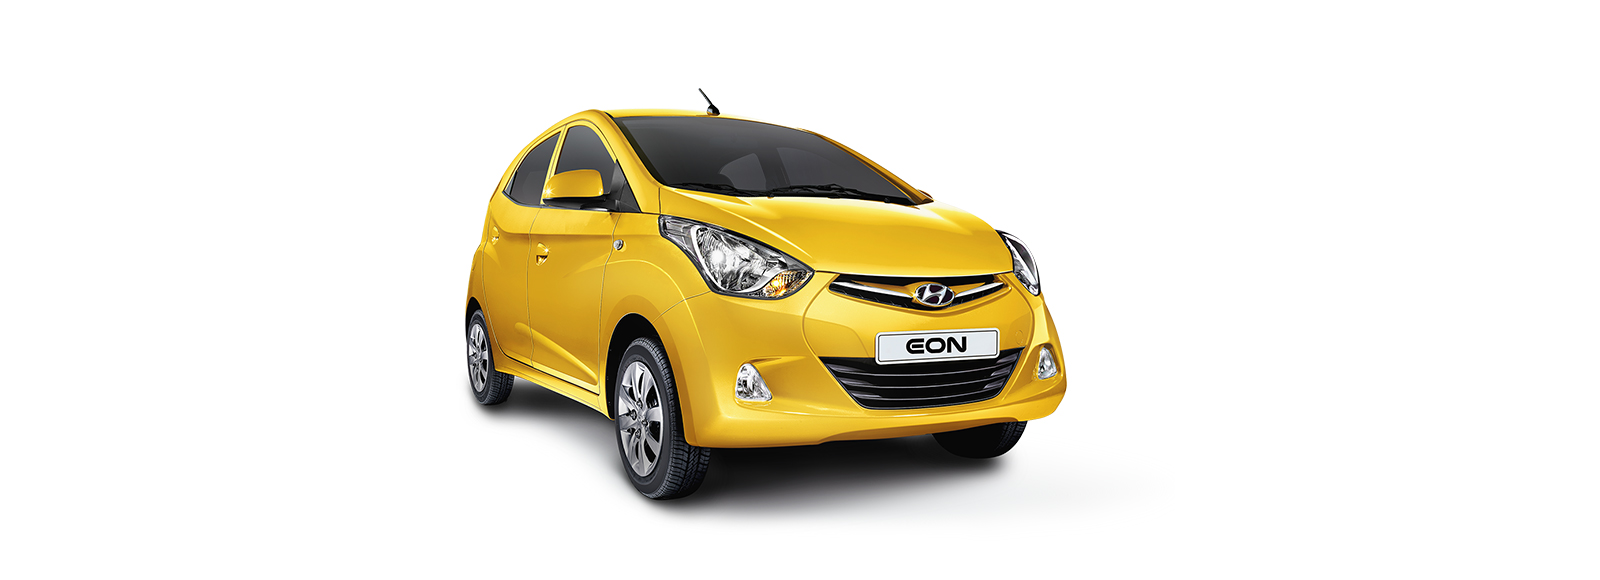 Side front view of yellow Eon